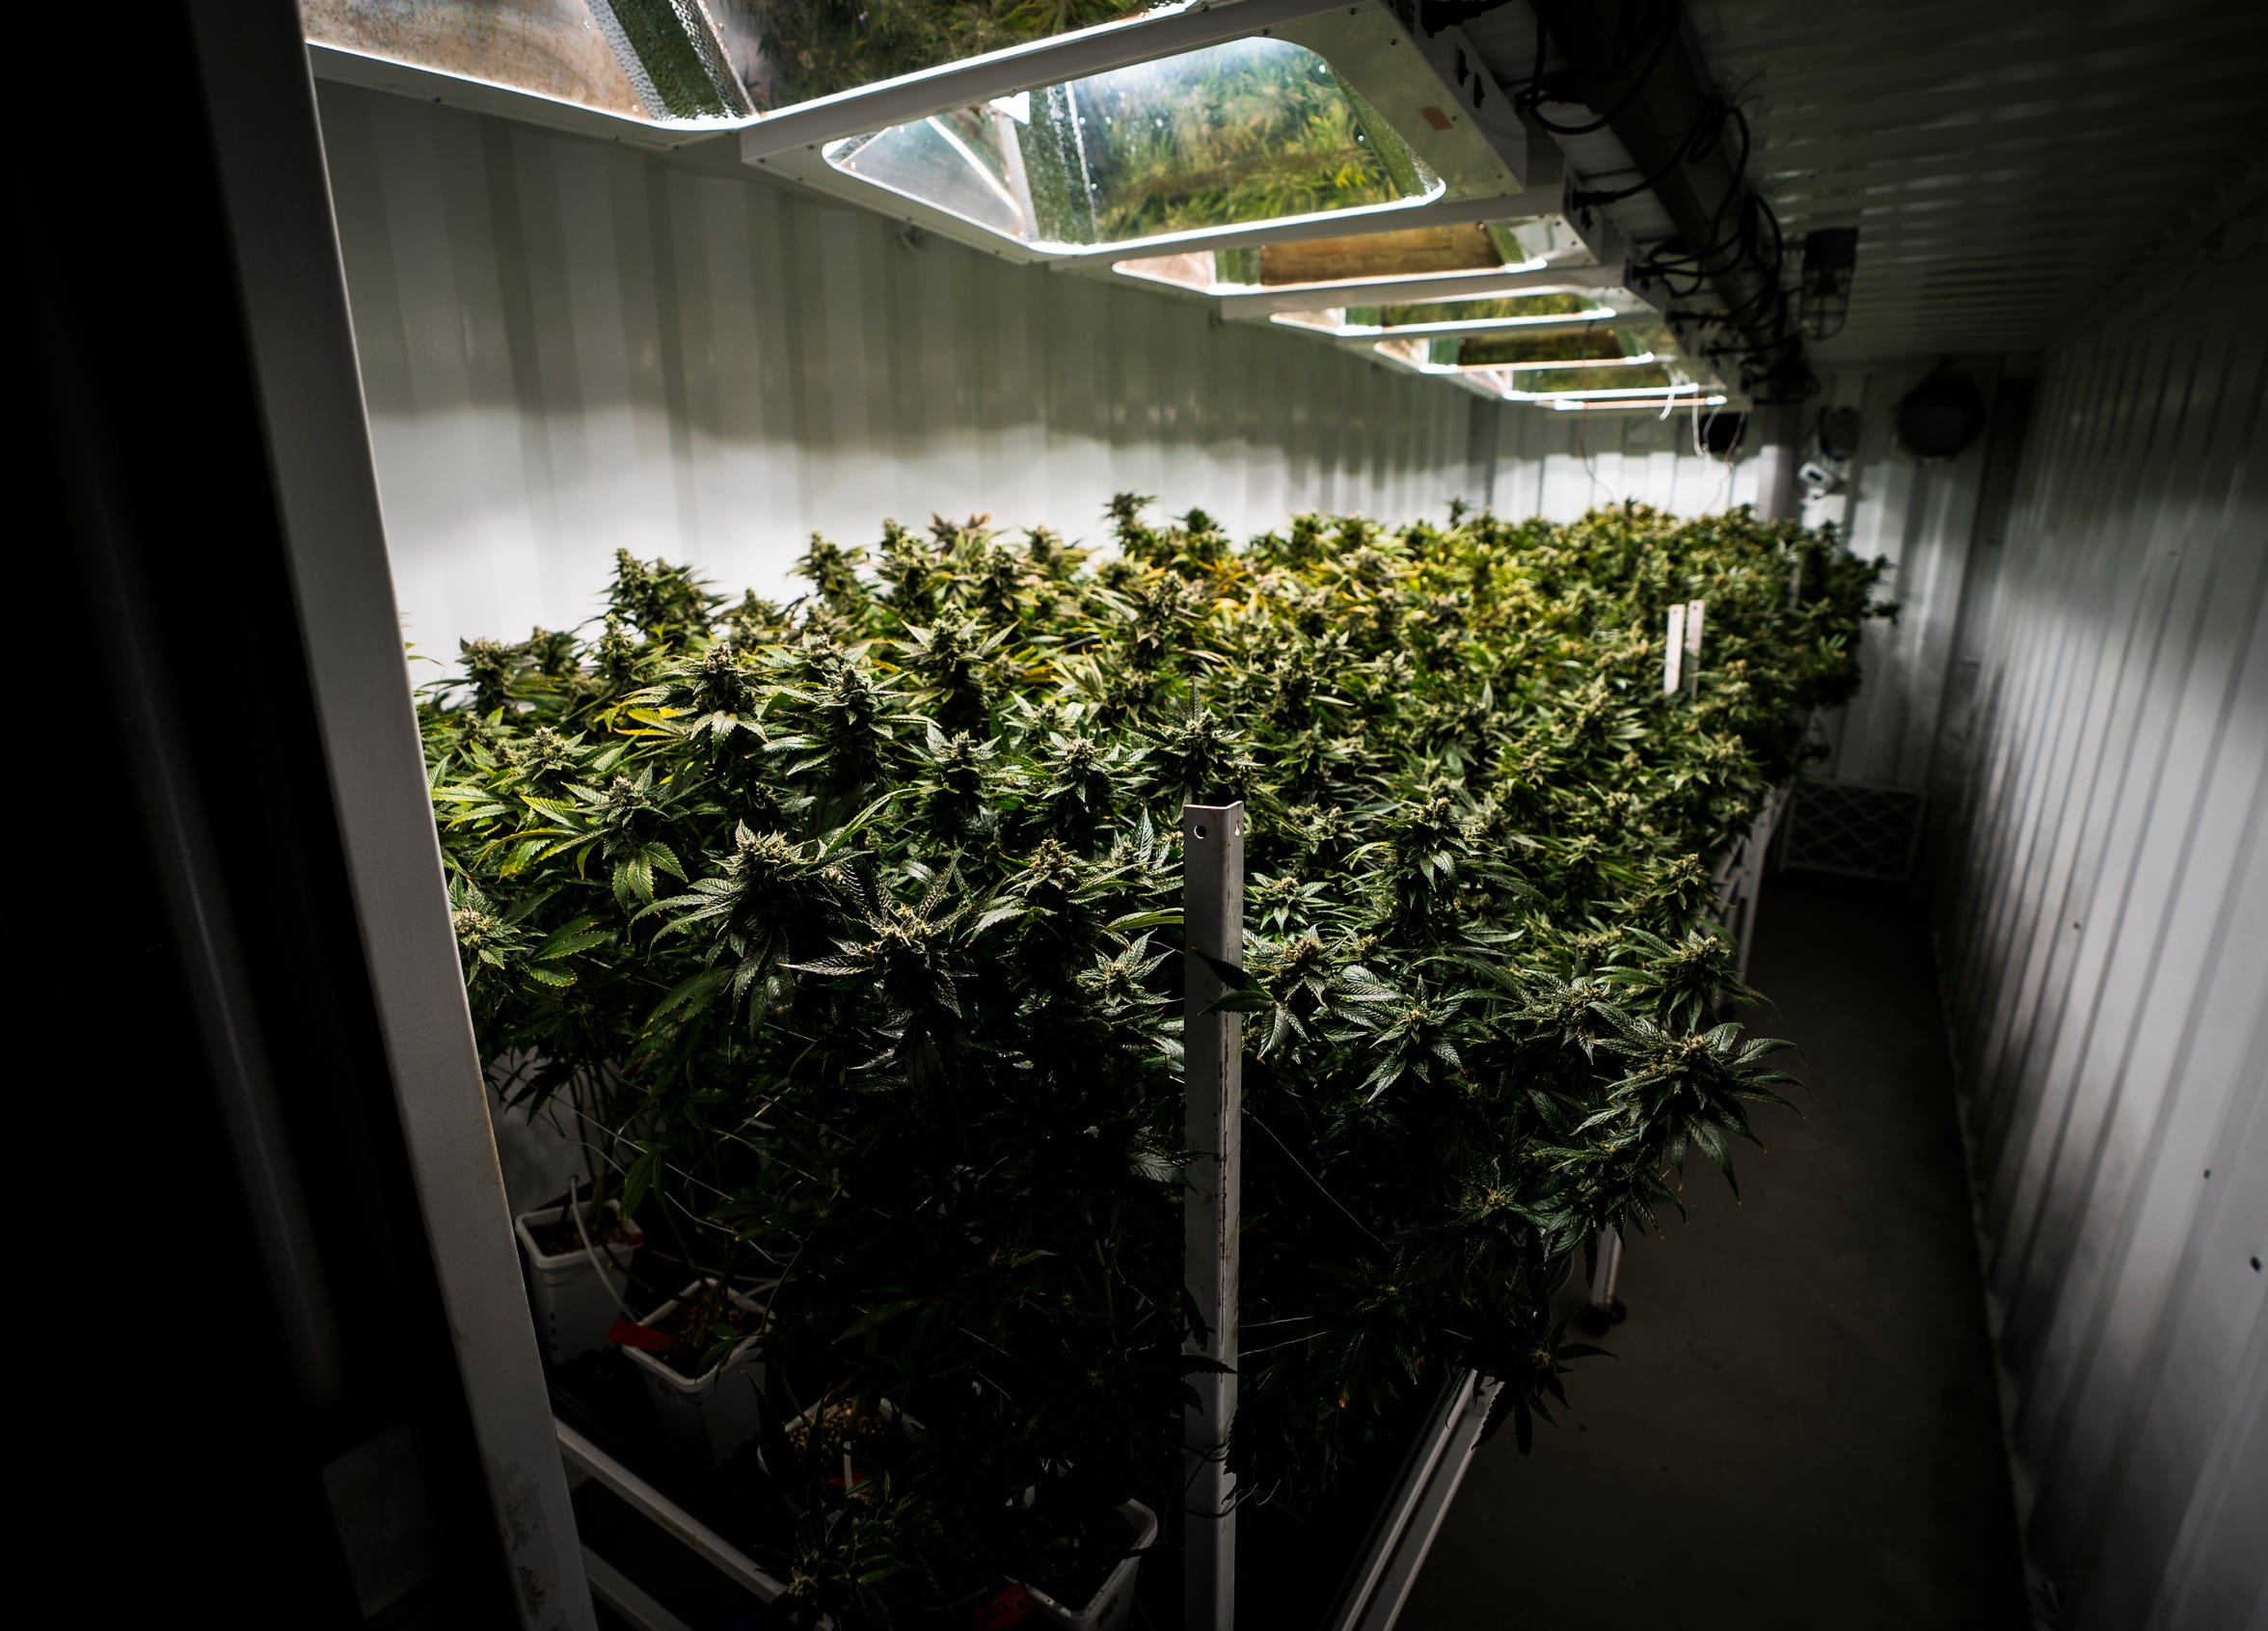 A look inside one of the fully-functioning grow pods at CVD, Inc. in Milton, Vt., on Tuesday, March 19, 2019. The hydroponic-equipped steel structures grow the facility's medical marijuana and house grow lights, irrigation and ventilation systems for quick growth.